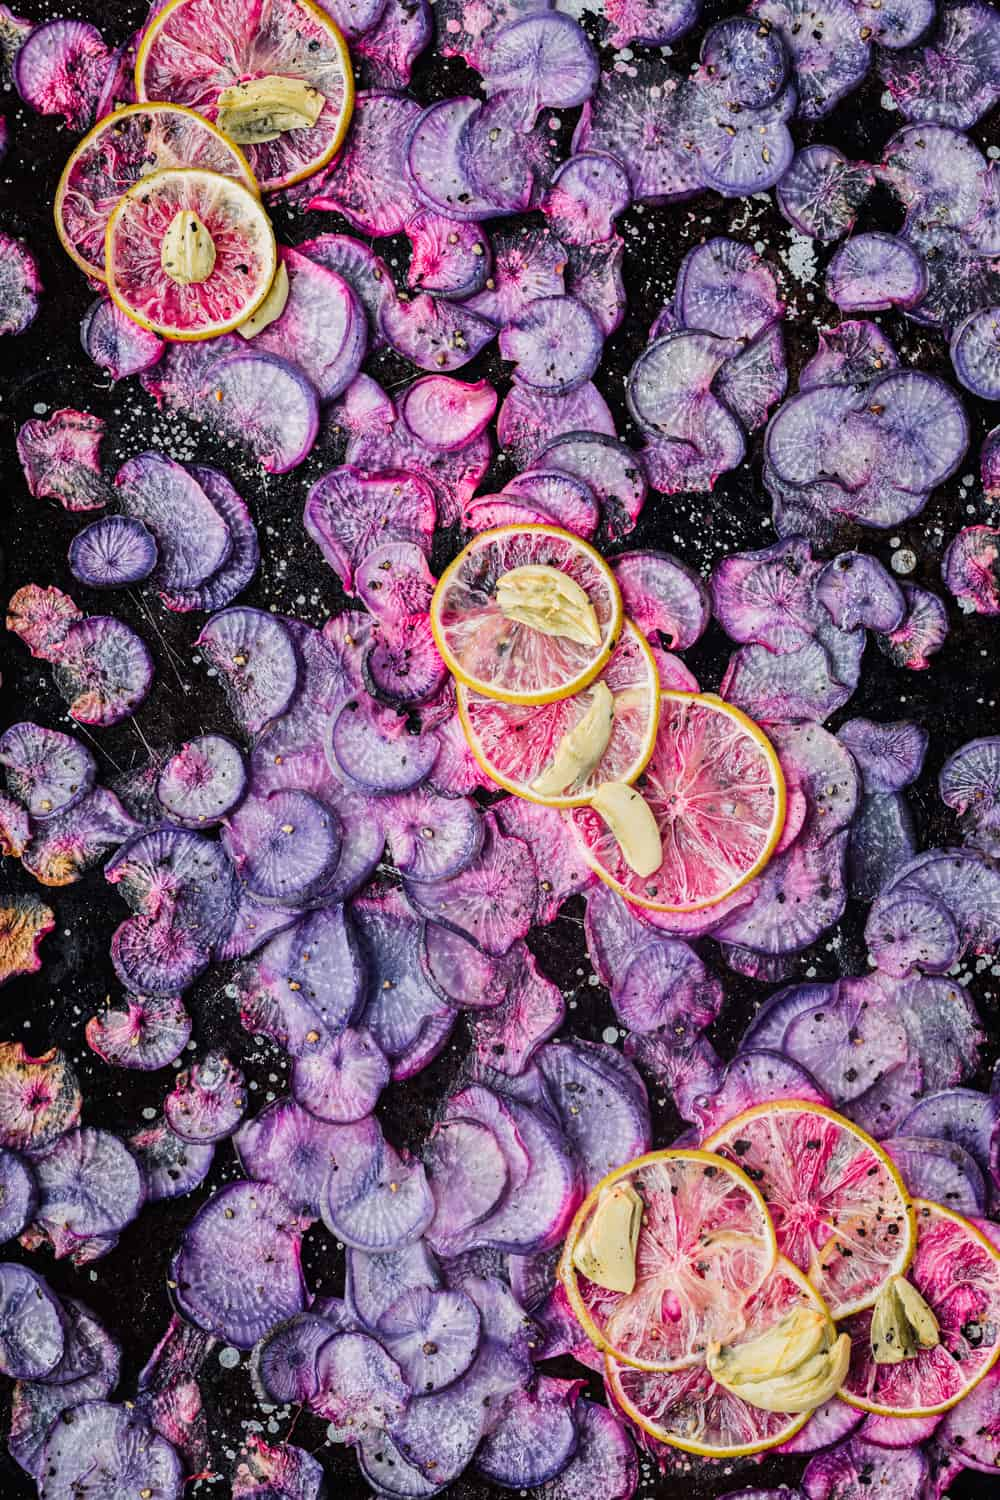 oven roasted purple ninja radishes just out of the oven, overhead shot